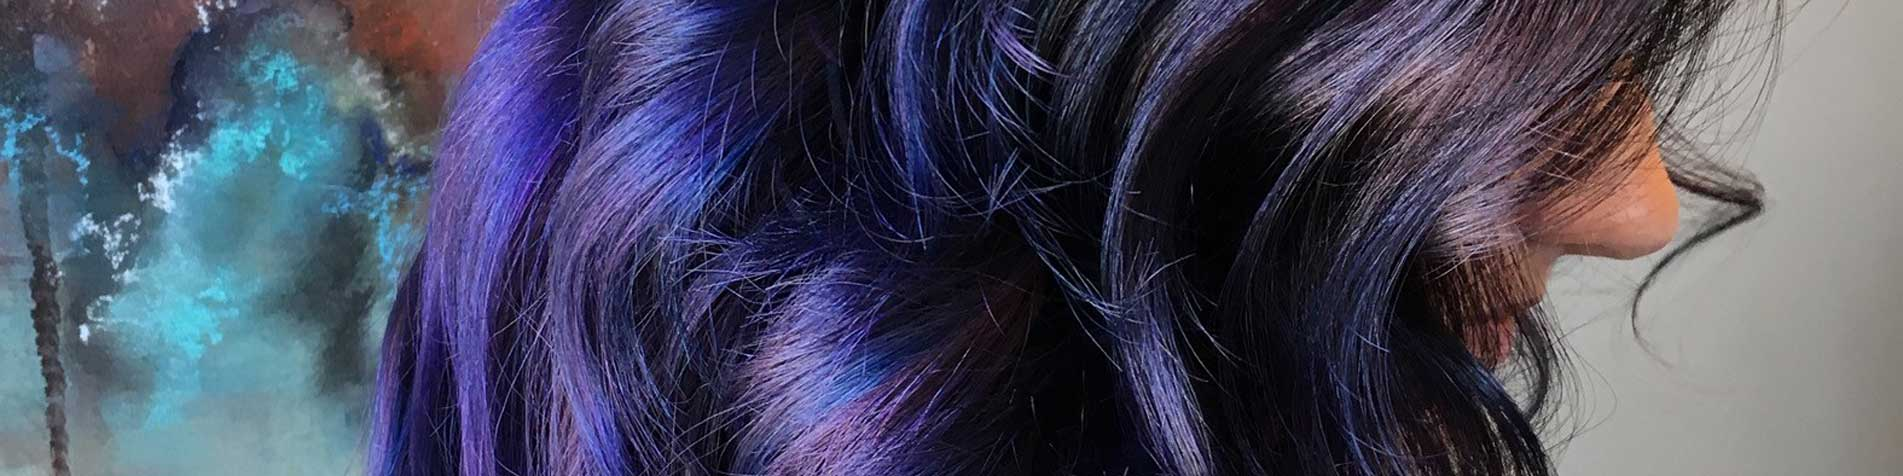 Blue and violet Hair